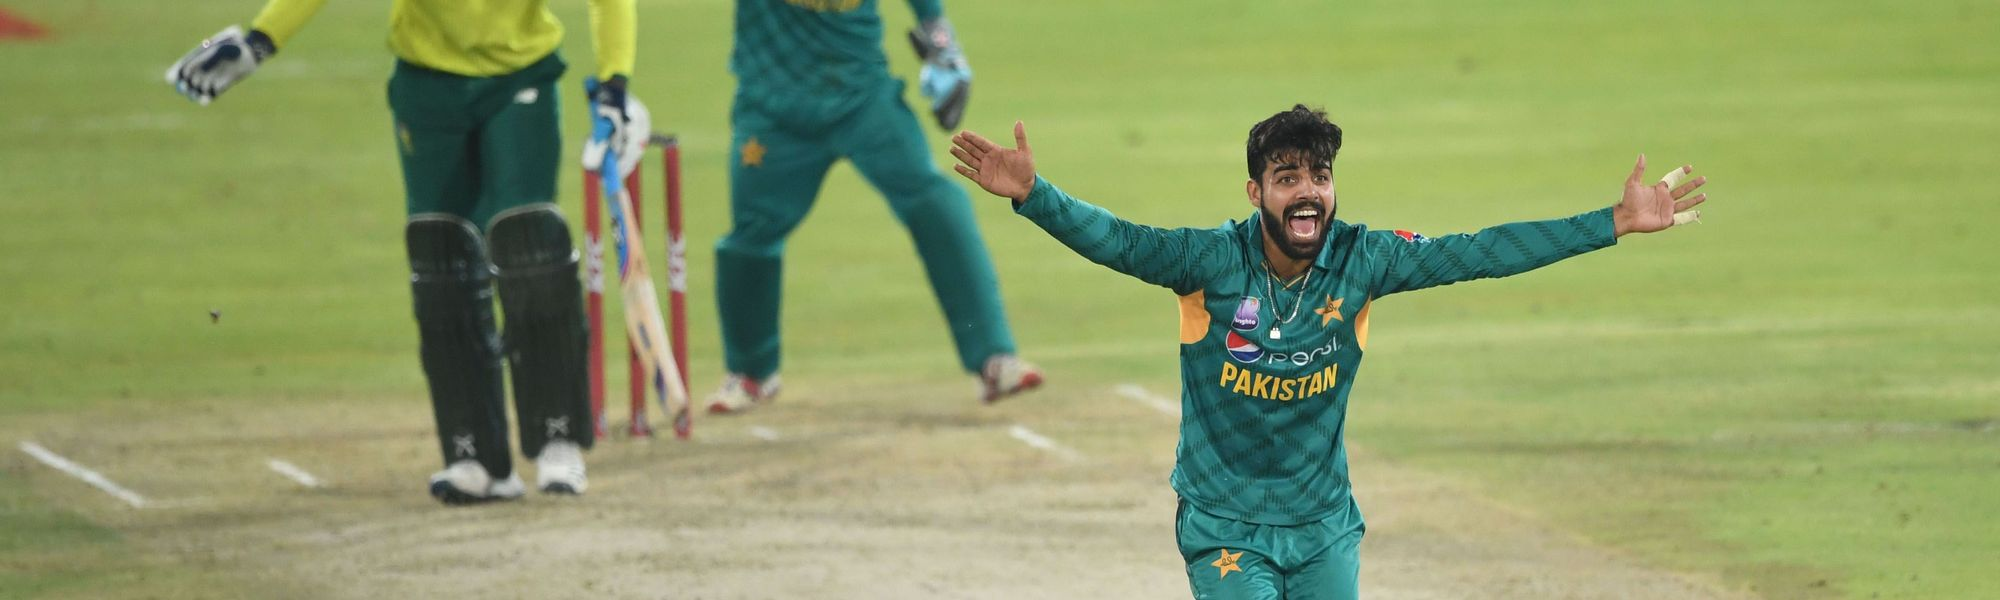 Shadab Khan appeals for a wicket